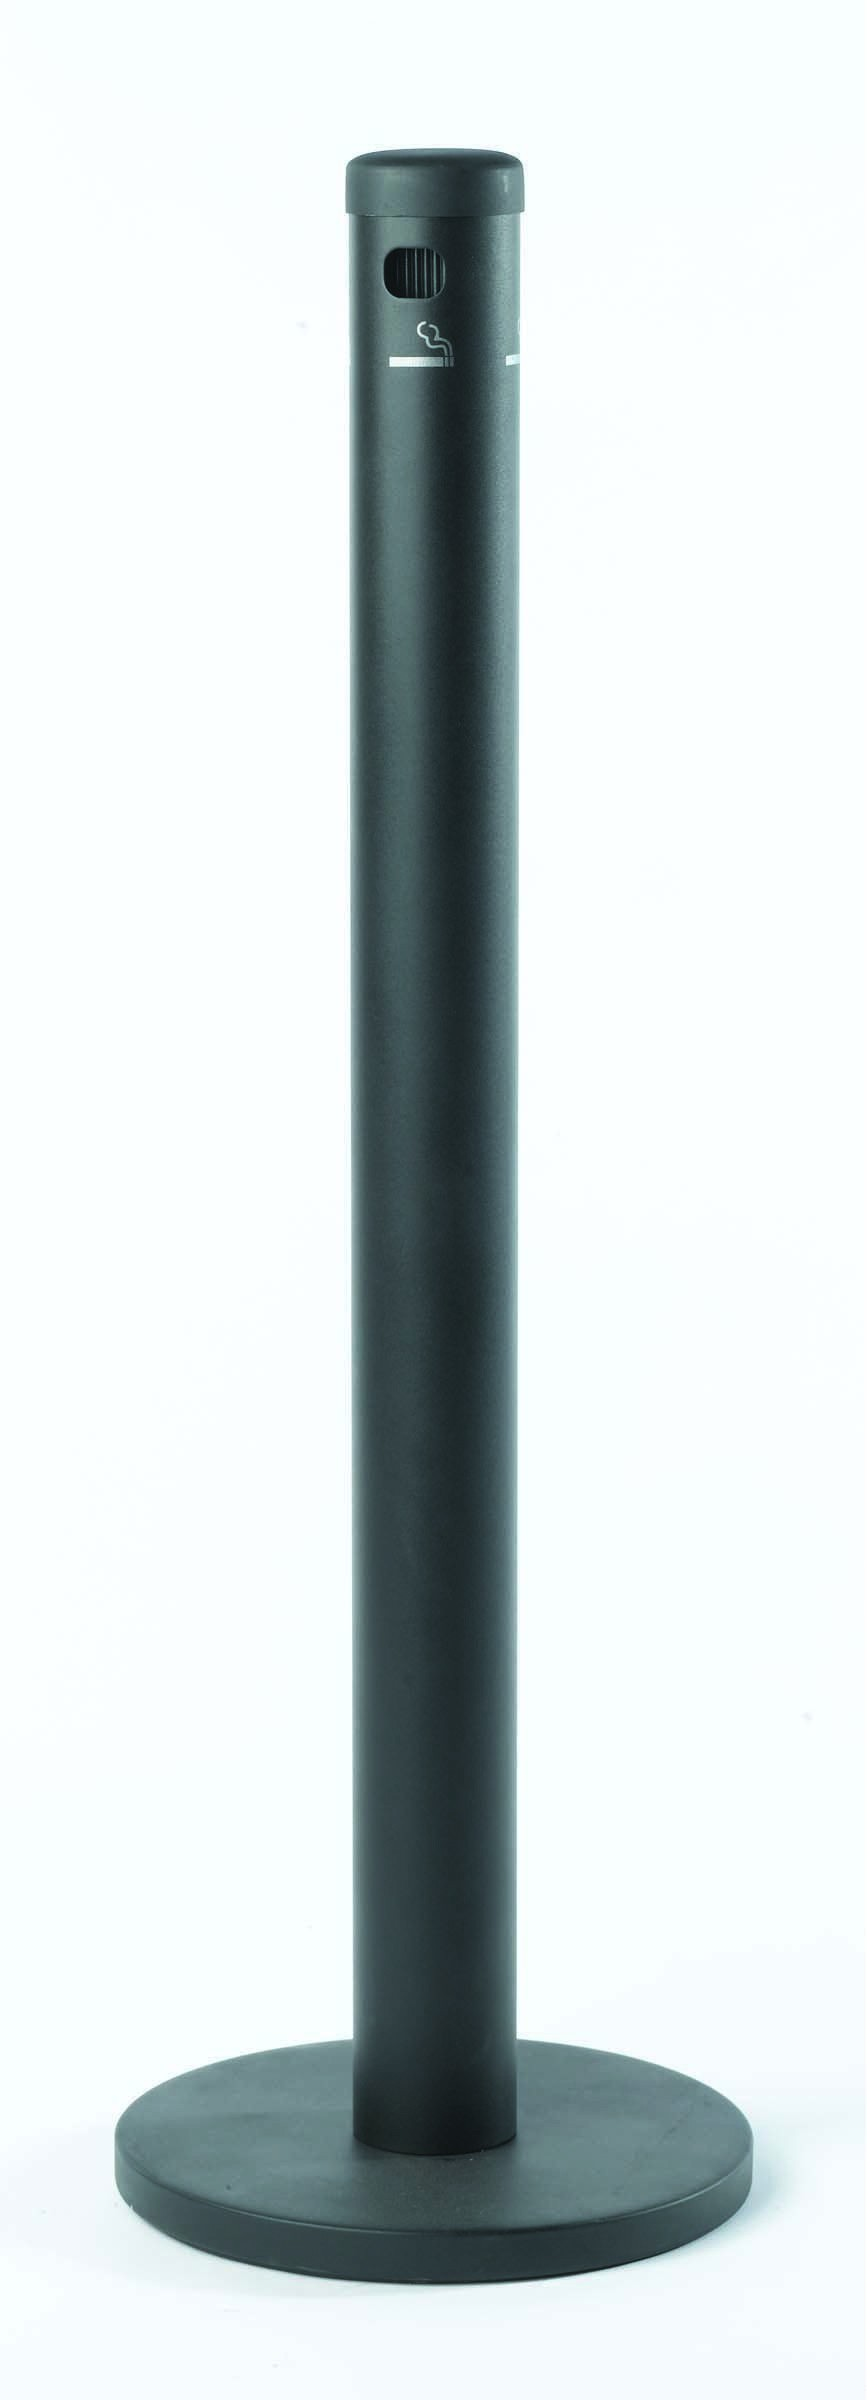 Aarco Products SB40F Black Floor Standing Cigarette Receptacle